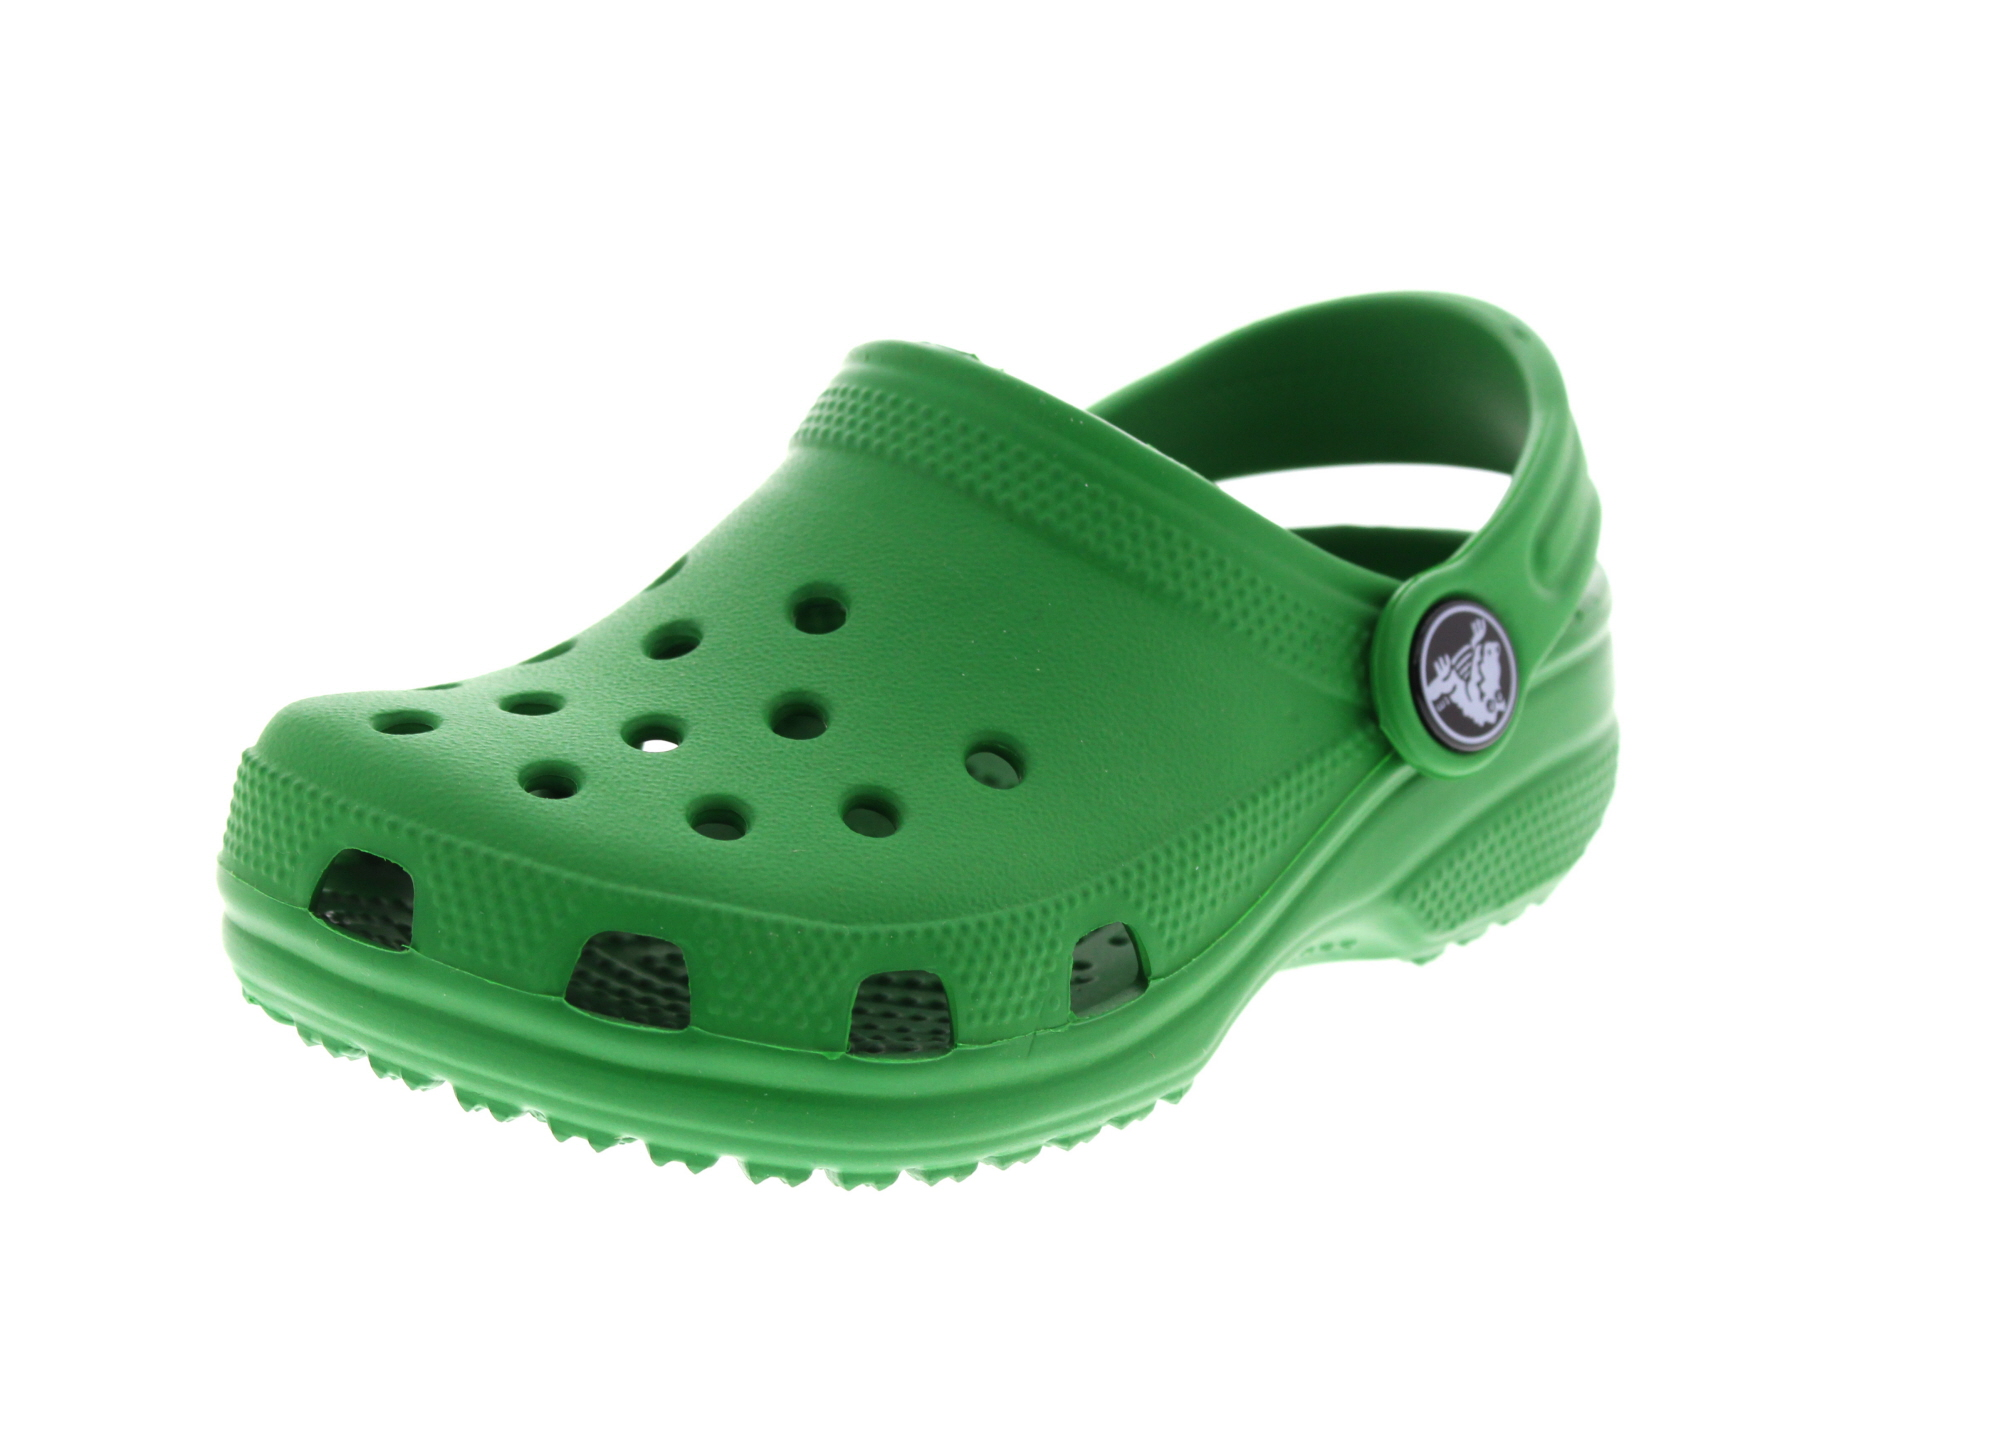 CROCS Kinderschuhe - CLASSIC KIDS 204536 - kelly green0-6491